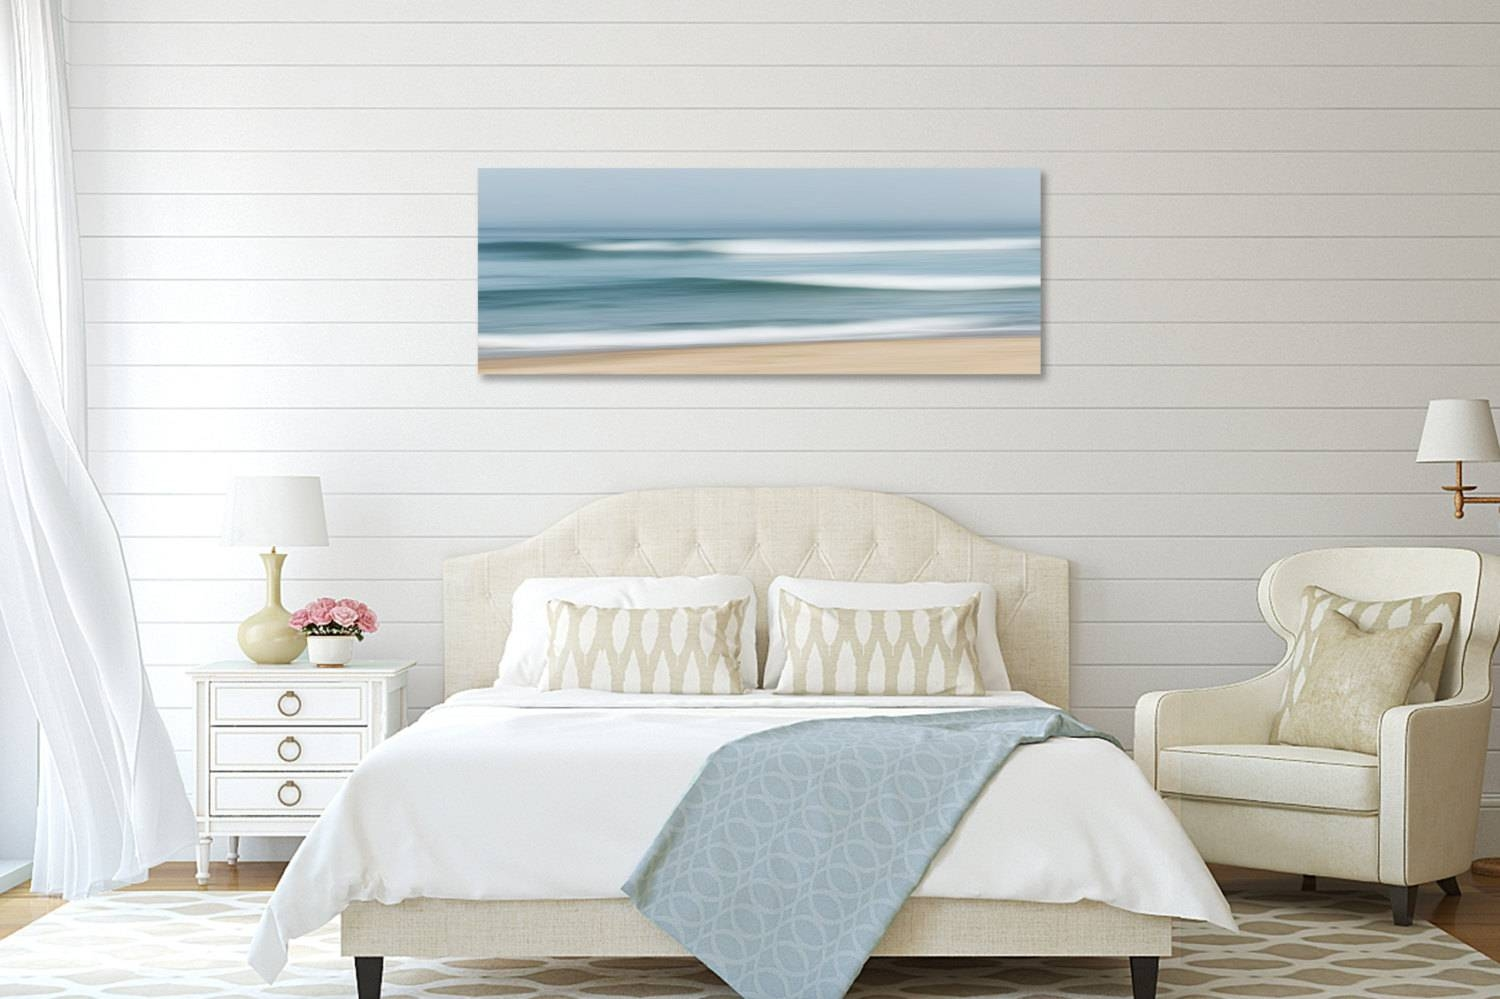 Large Abstract Beach Canvas Wall Art Ocean Seascape Throughout Most Current Coastal Wall Art Canvas (View 11 of 20)